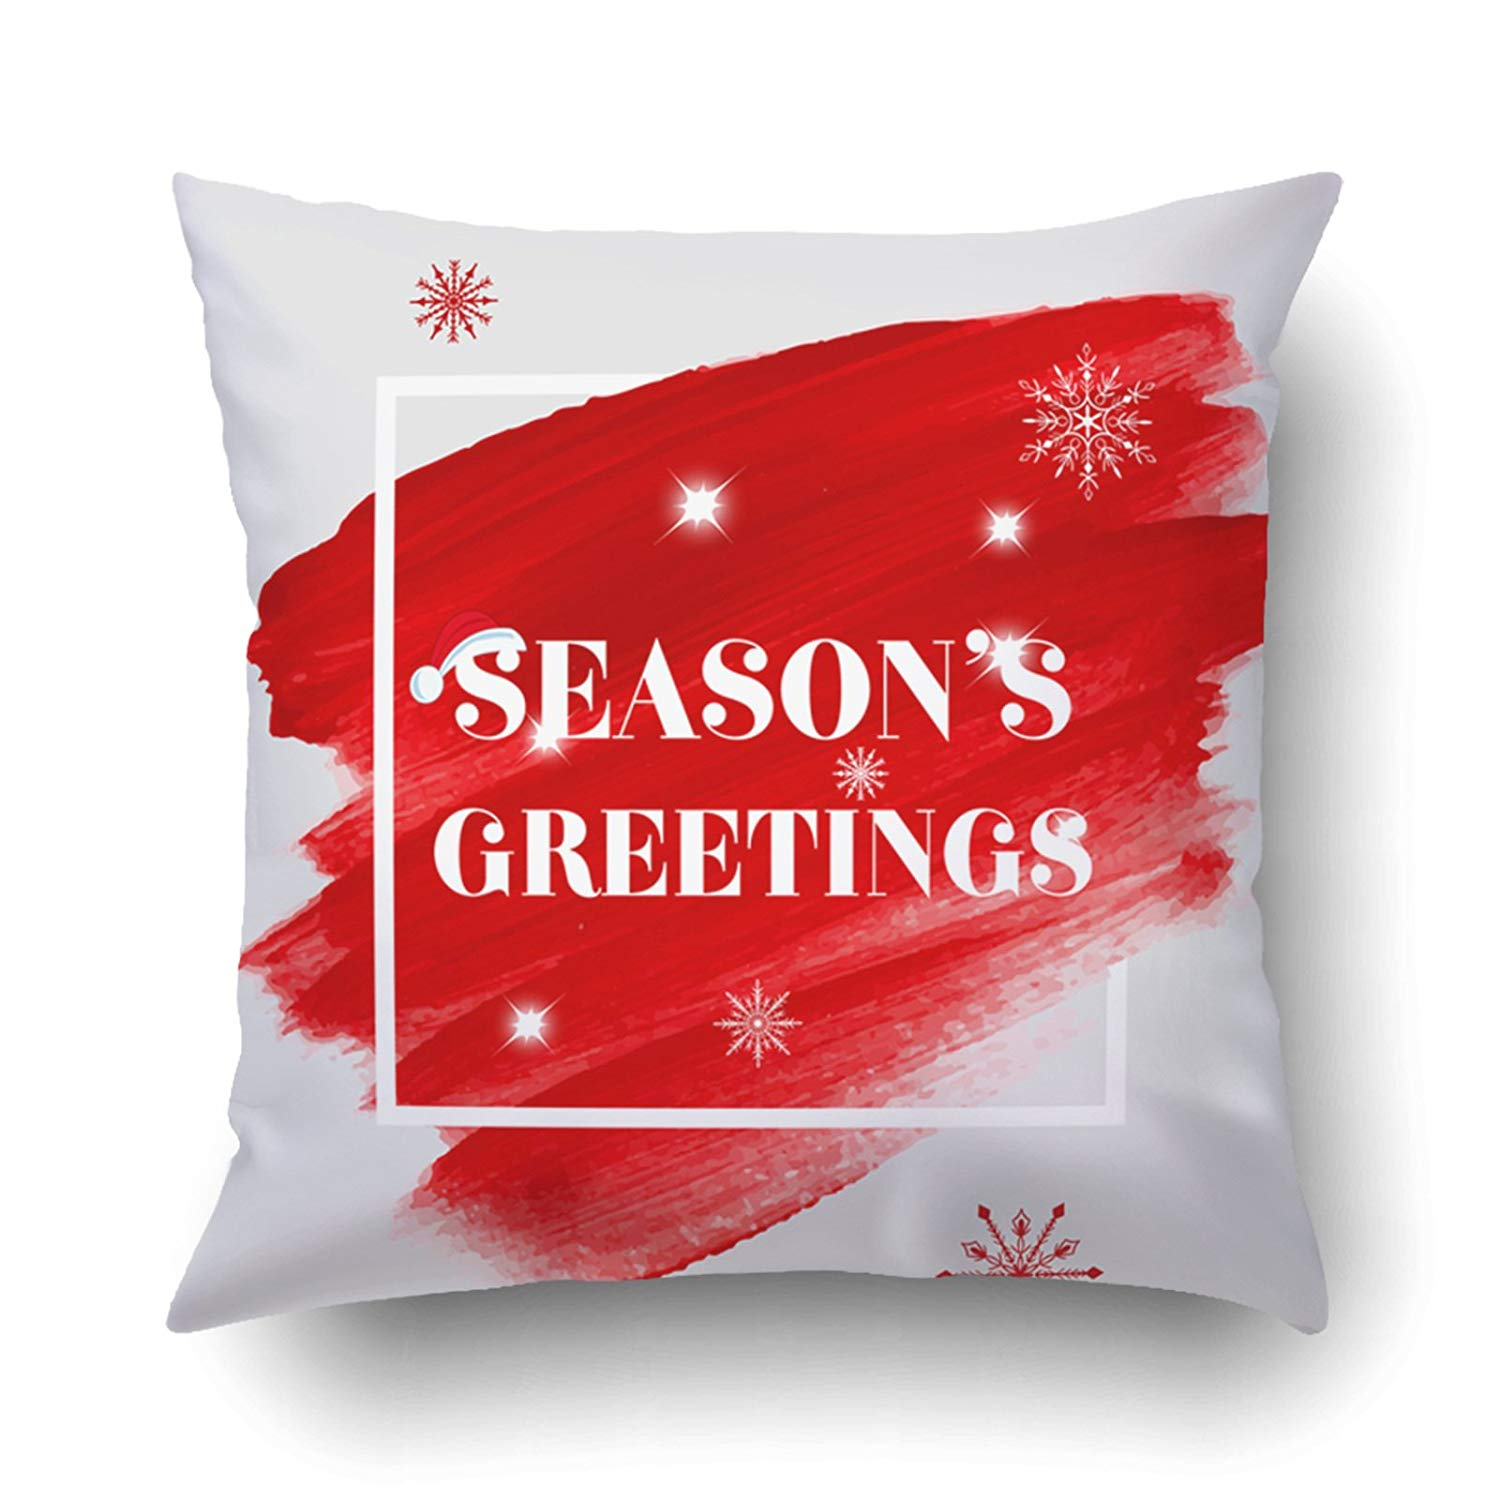 BPBOP Xmas Season Greetings Holiday Sign Text Over Abstract Red Brush Paint Pillow Case Cushion Cover Case Throw Pillow Case 18x18 inches